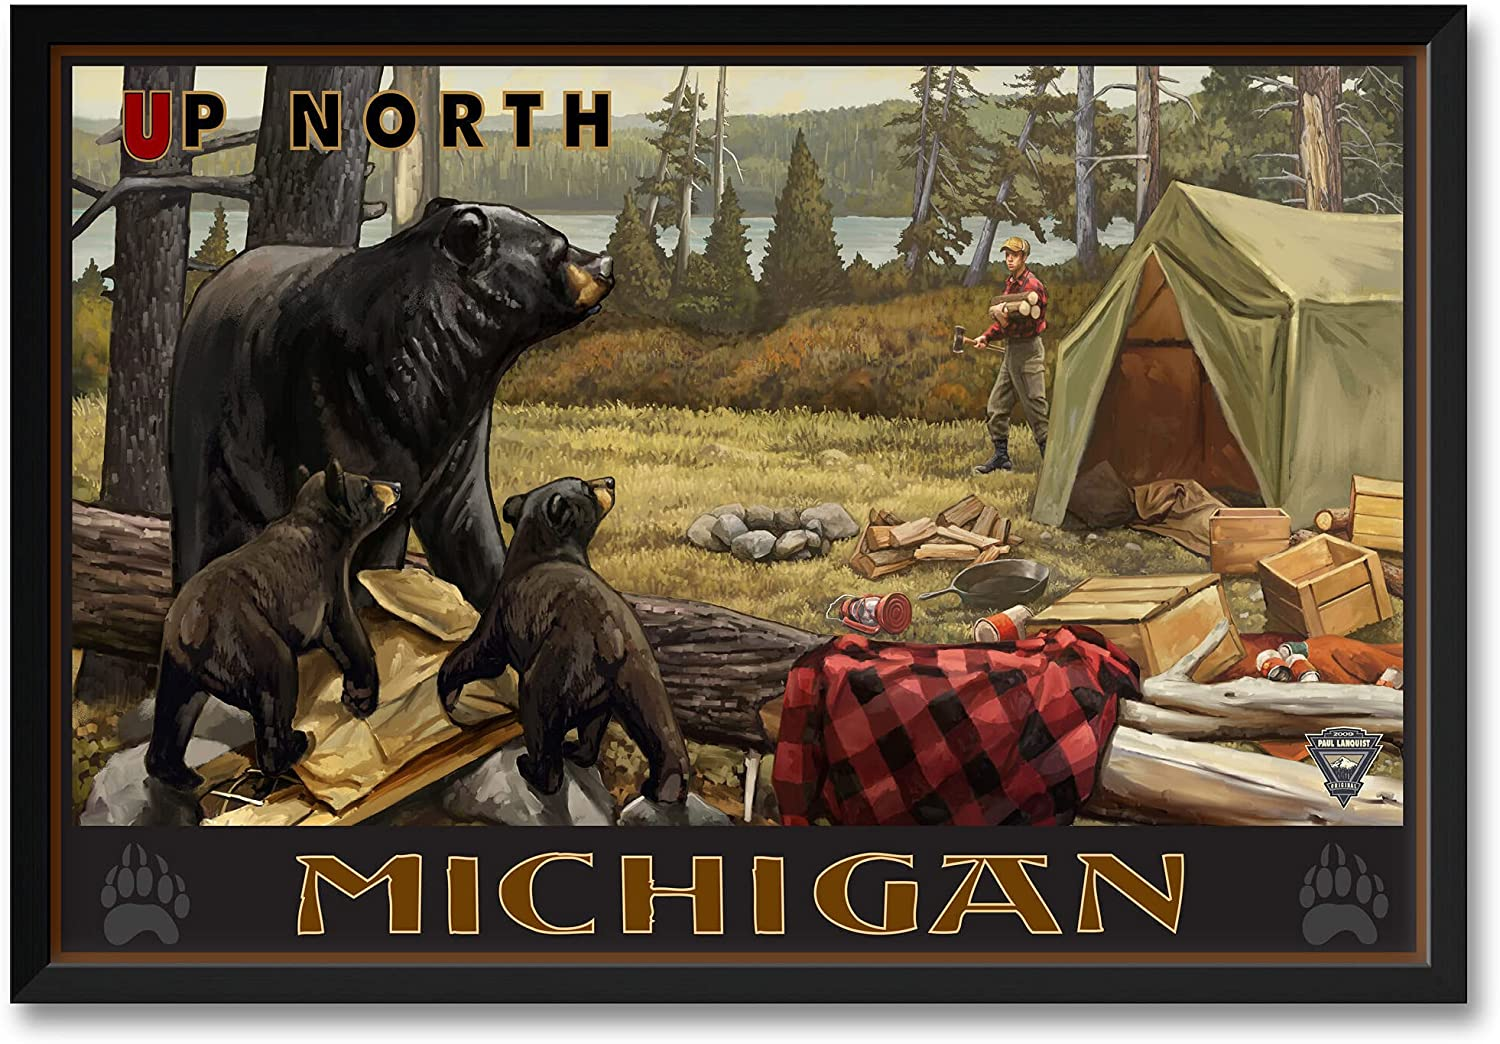 Up North Michigan Lake Camper Framed Pr Professionally Bears Art Discount is also underway Popular